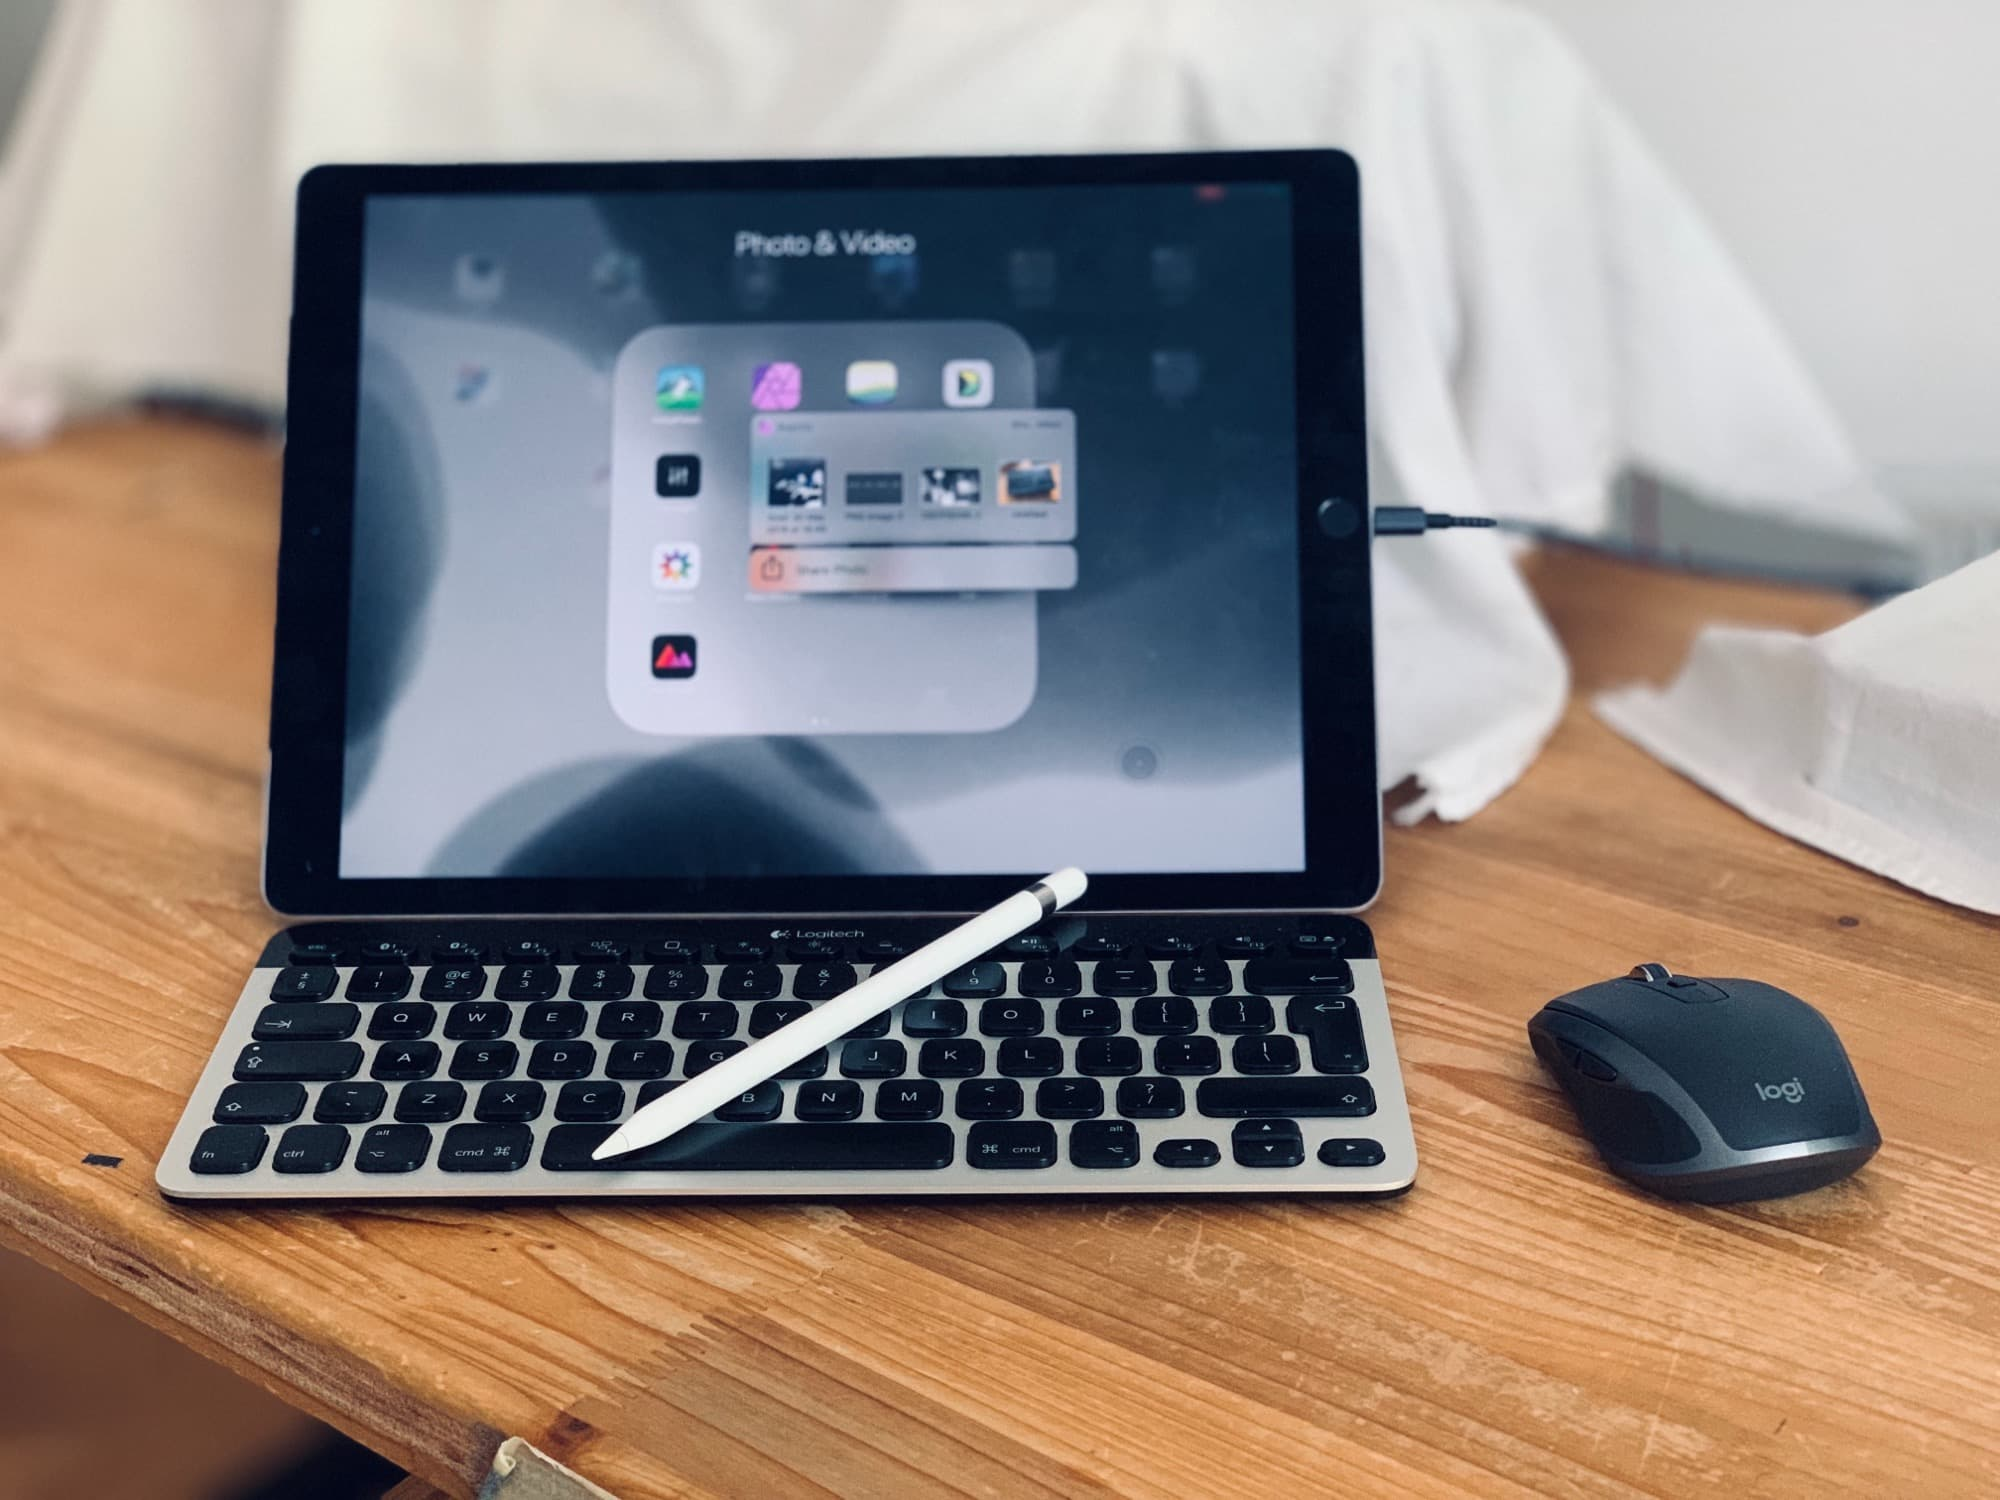 With iPadOS, you're one step closer to replacing your Mac with an iPad.